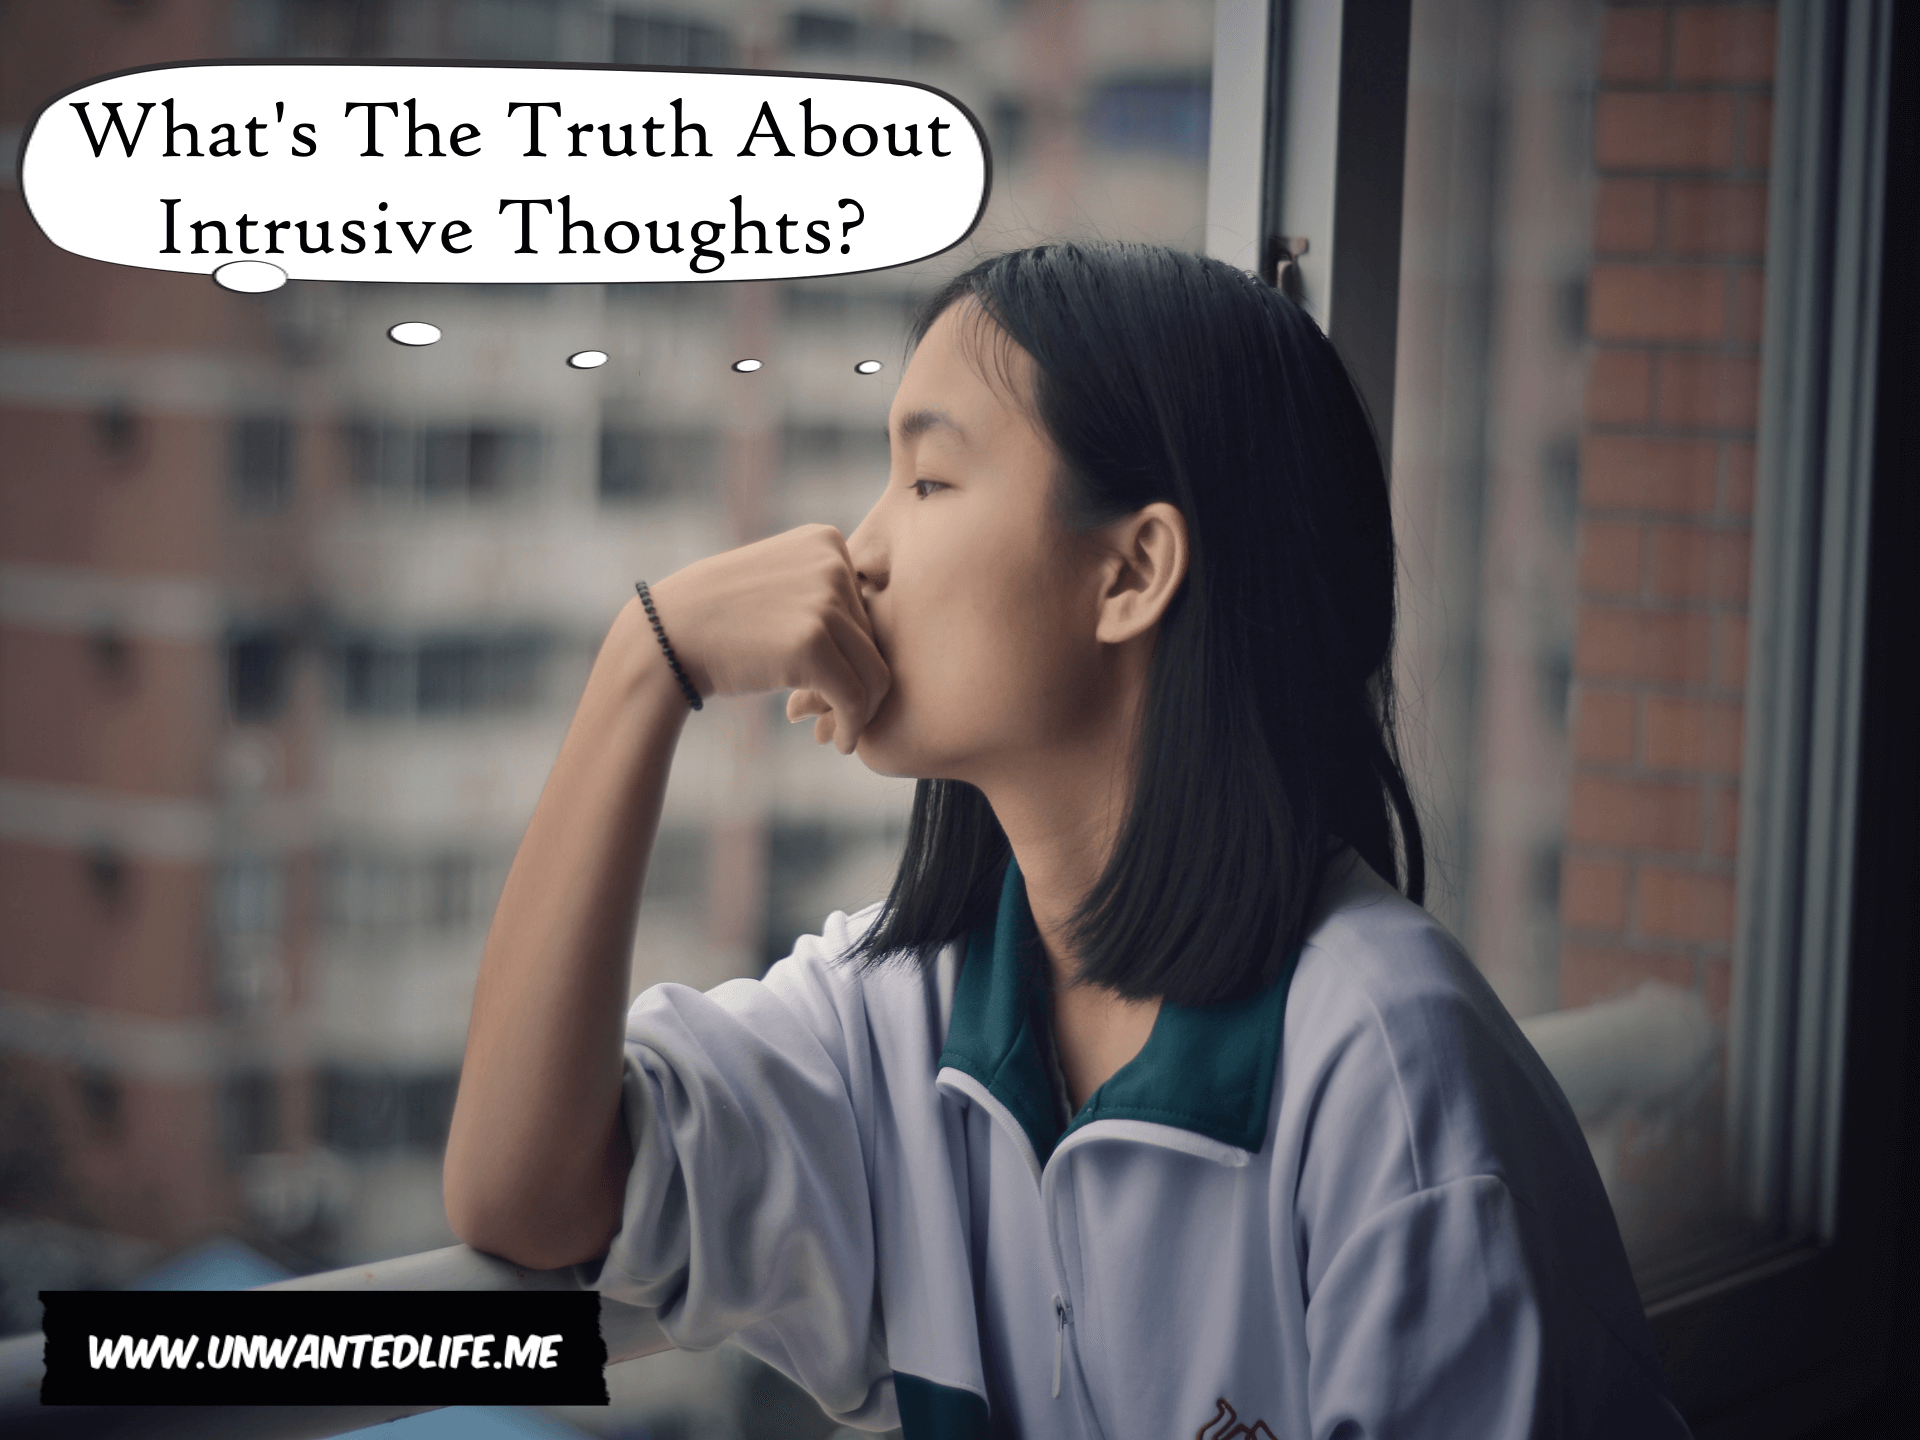 What's The Truth About Intrusive Thoughts? | Mental Health, Wellness, and Wellbeing